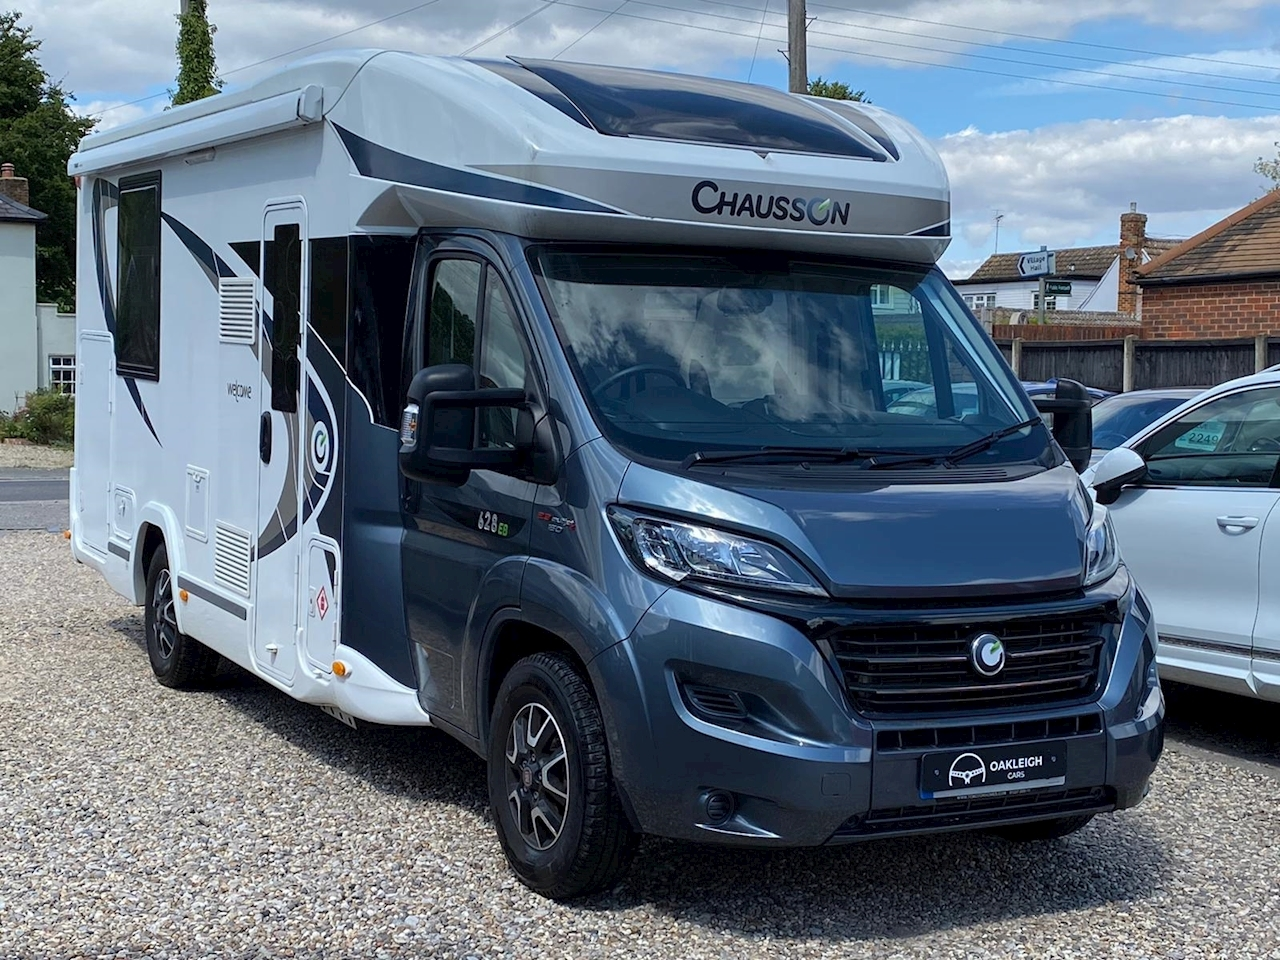 Chausson Chausson 628 EB 2.3 2dr Motorhome Automatic Diesel